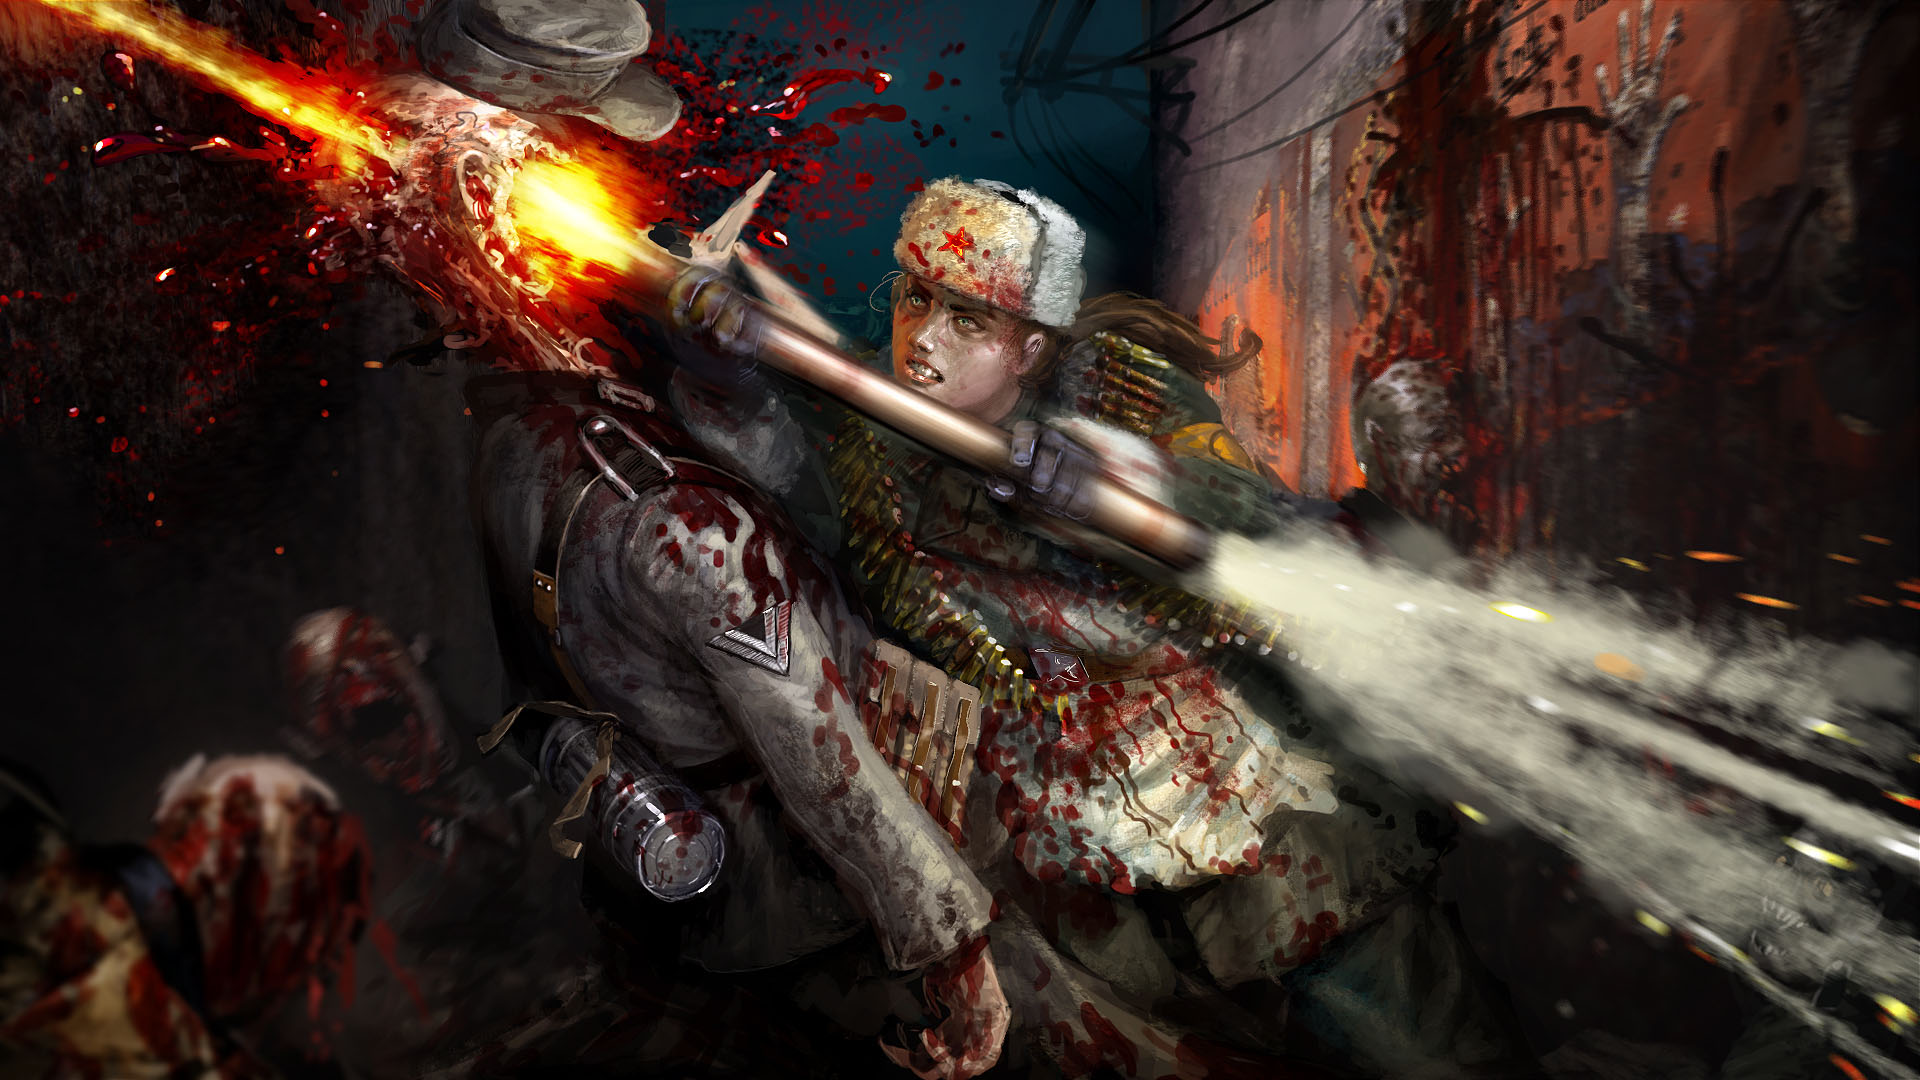 Zombie Artwork Wallpaper Zombie Army Trilogy Artwork 1